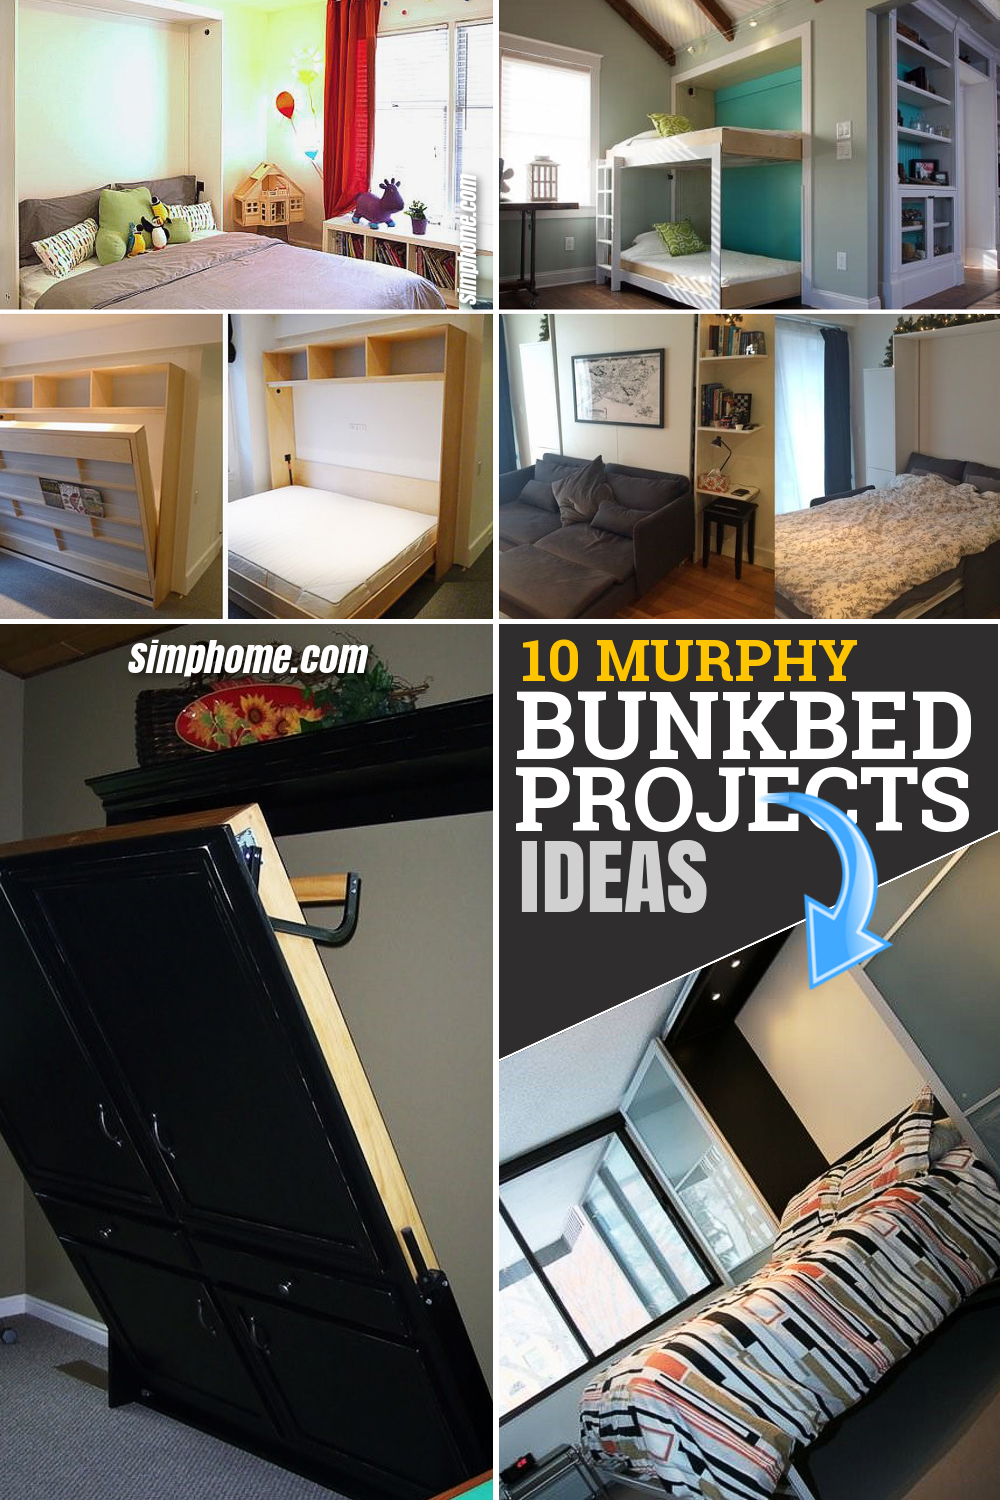 10 DIY Murphy Bed project ideas via Simphome.com Featured Pintrerest Images